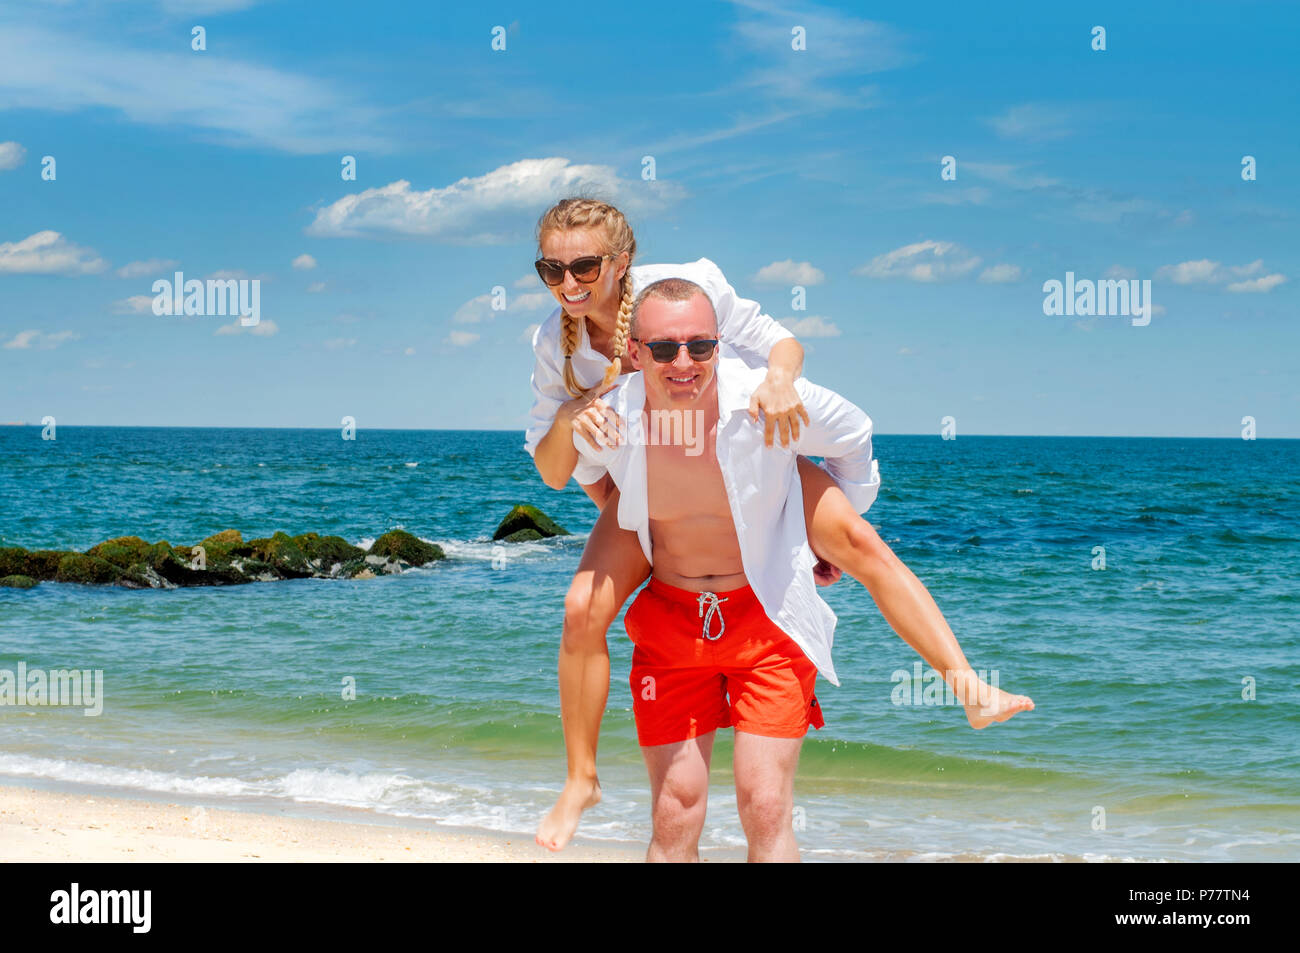 Happy couple in love on beach summer vacations. Young man giving piggyback ride to woman on beach. - Stock Image